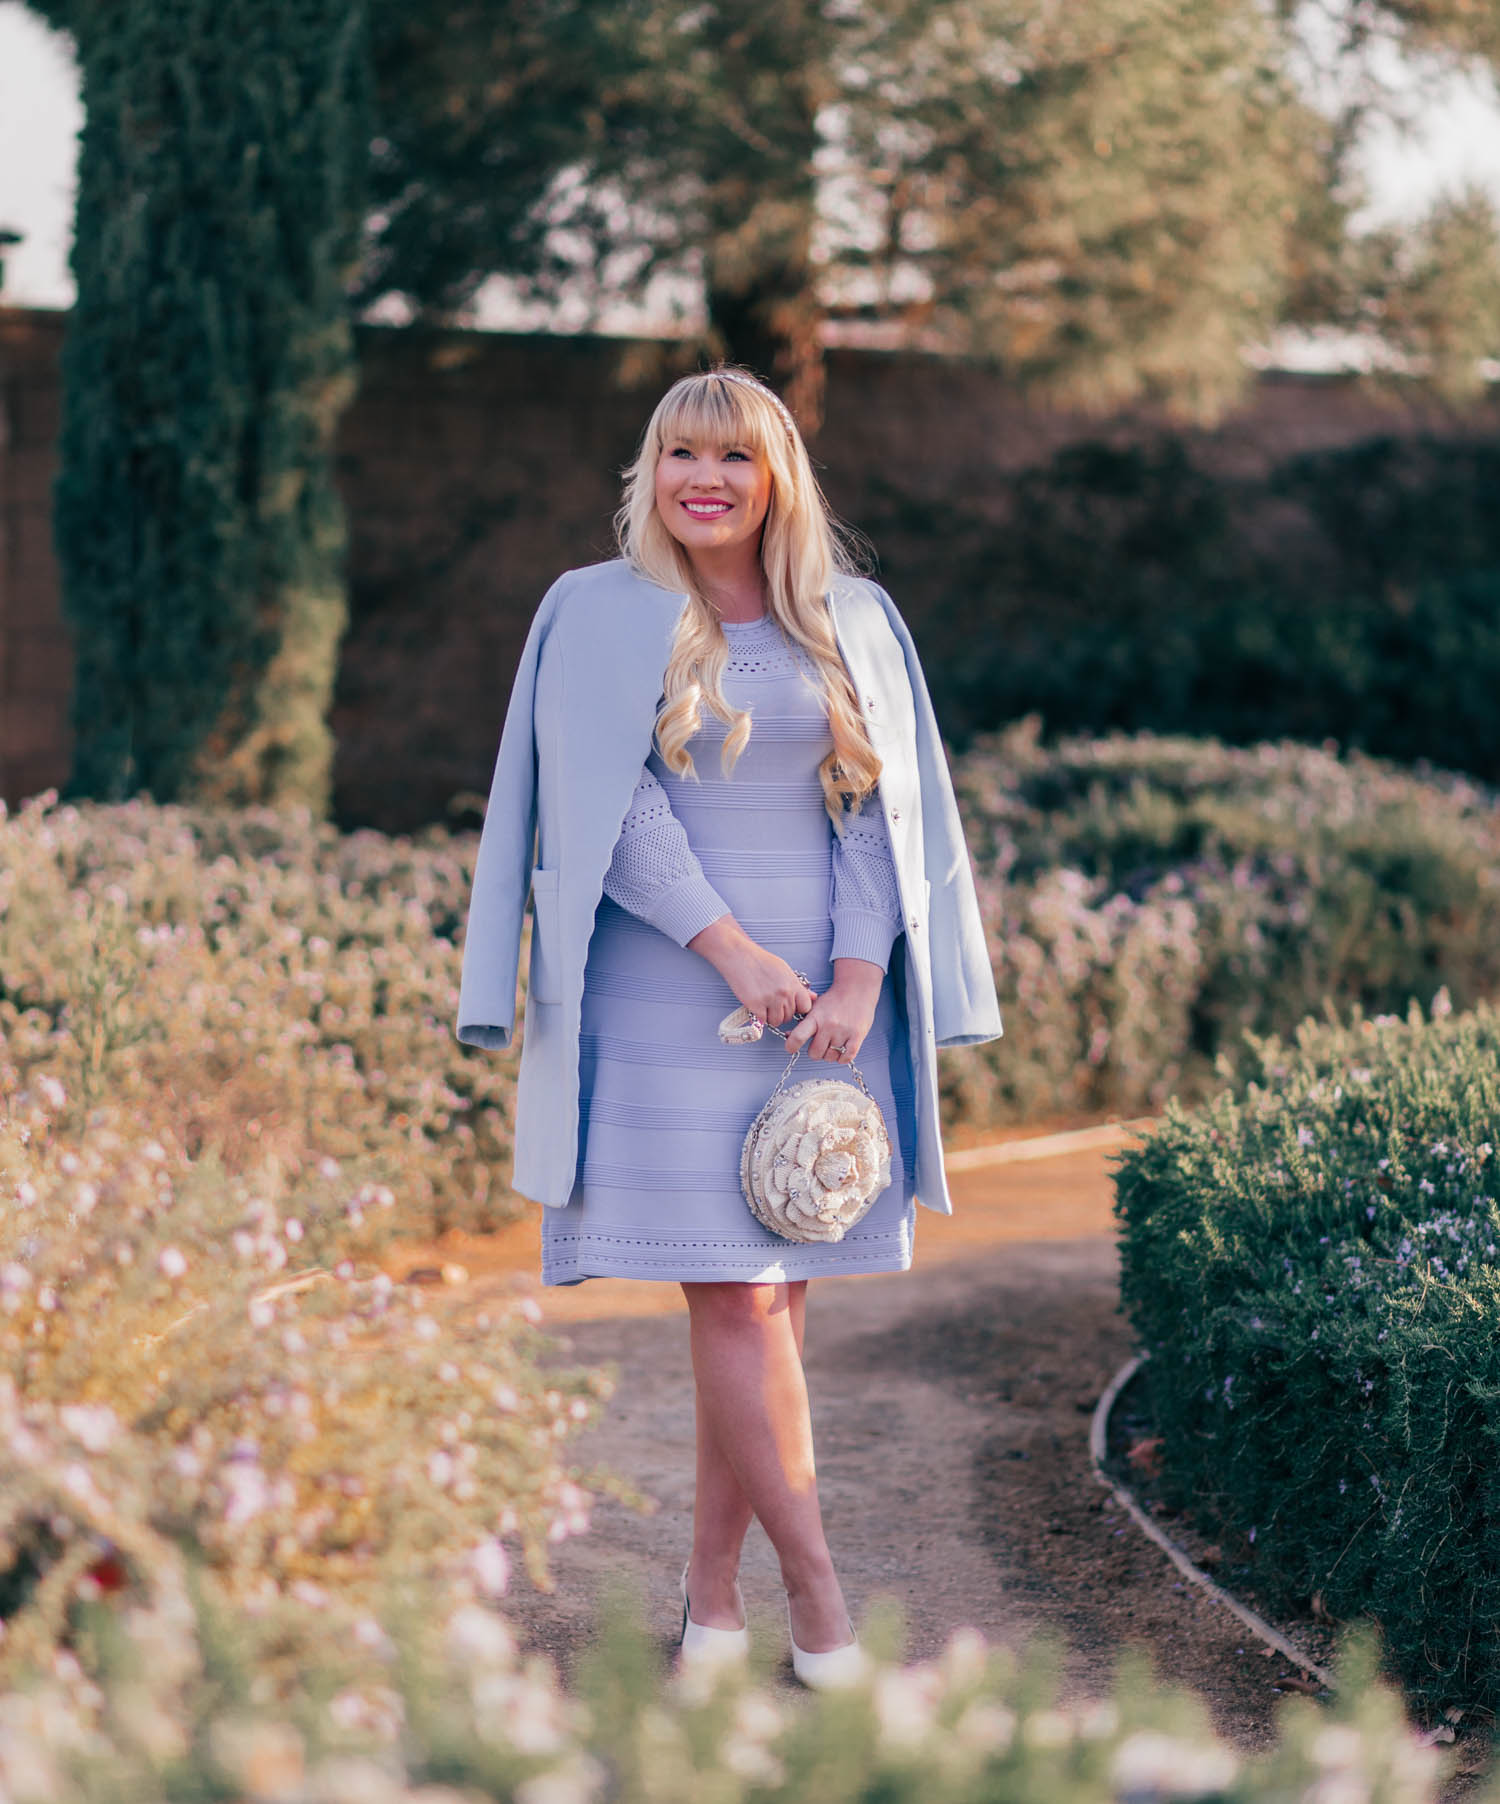 Elizabeth Hugen of Lizzie in Lace styles a light blue monochrome outfit for spring